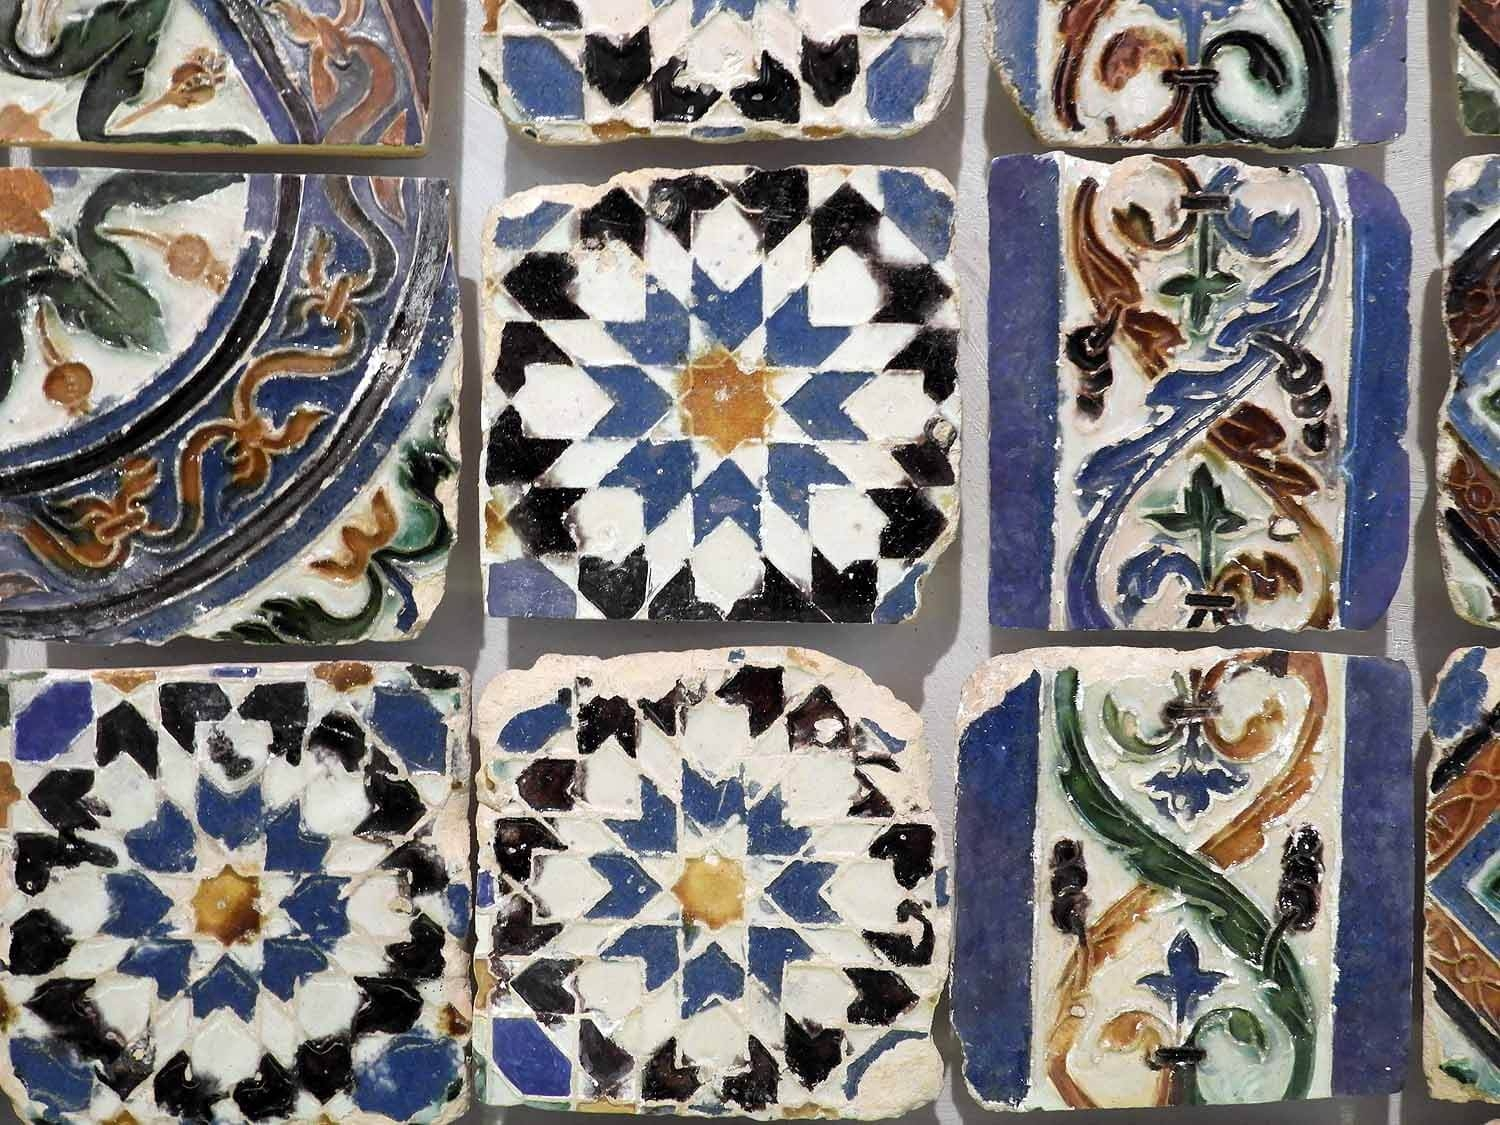 National Azuleijo Museum - Azulejos (painted glazed tiles, predominately blue) are quintessentially Portuguese. For an entrance fee of only 5 euro, this museum is a must! It was fun to see the beautiful Azulejo memorials, and to learn how they evolved from the 16th century until now.